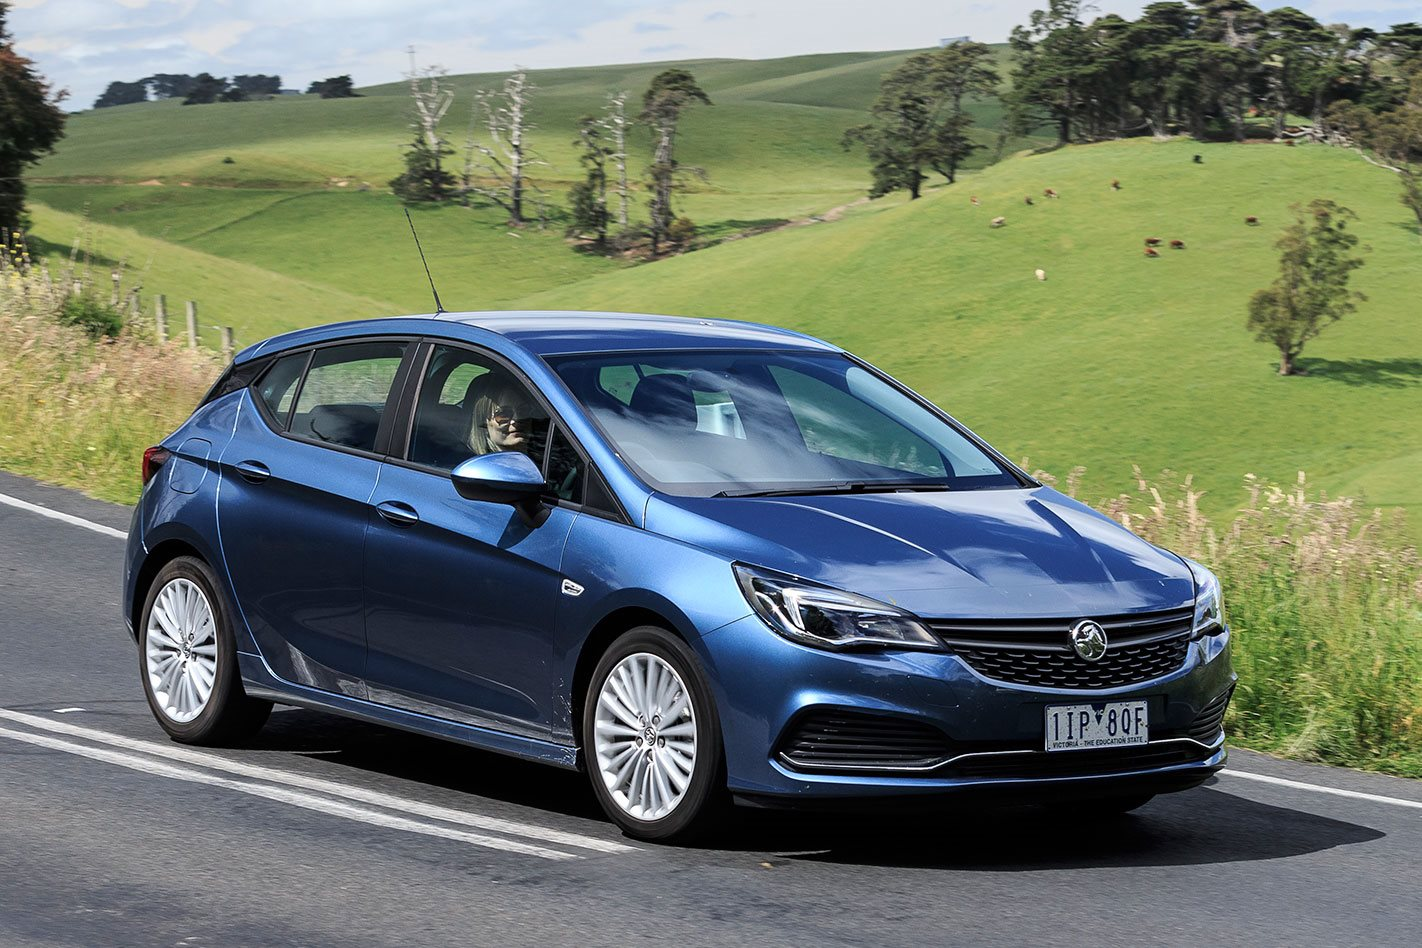 New 2020 Holden Astra Hatch RS-V | New Zealand Issues Forum